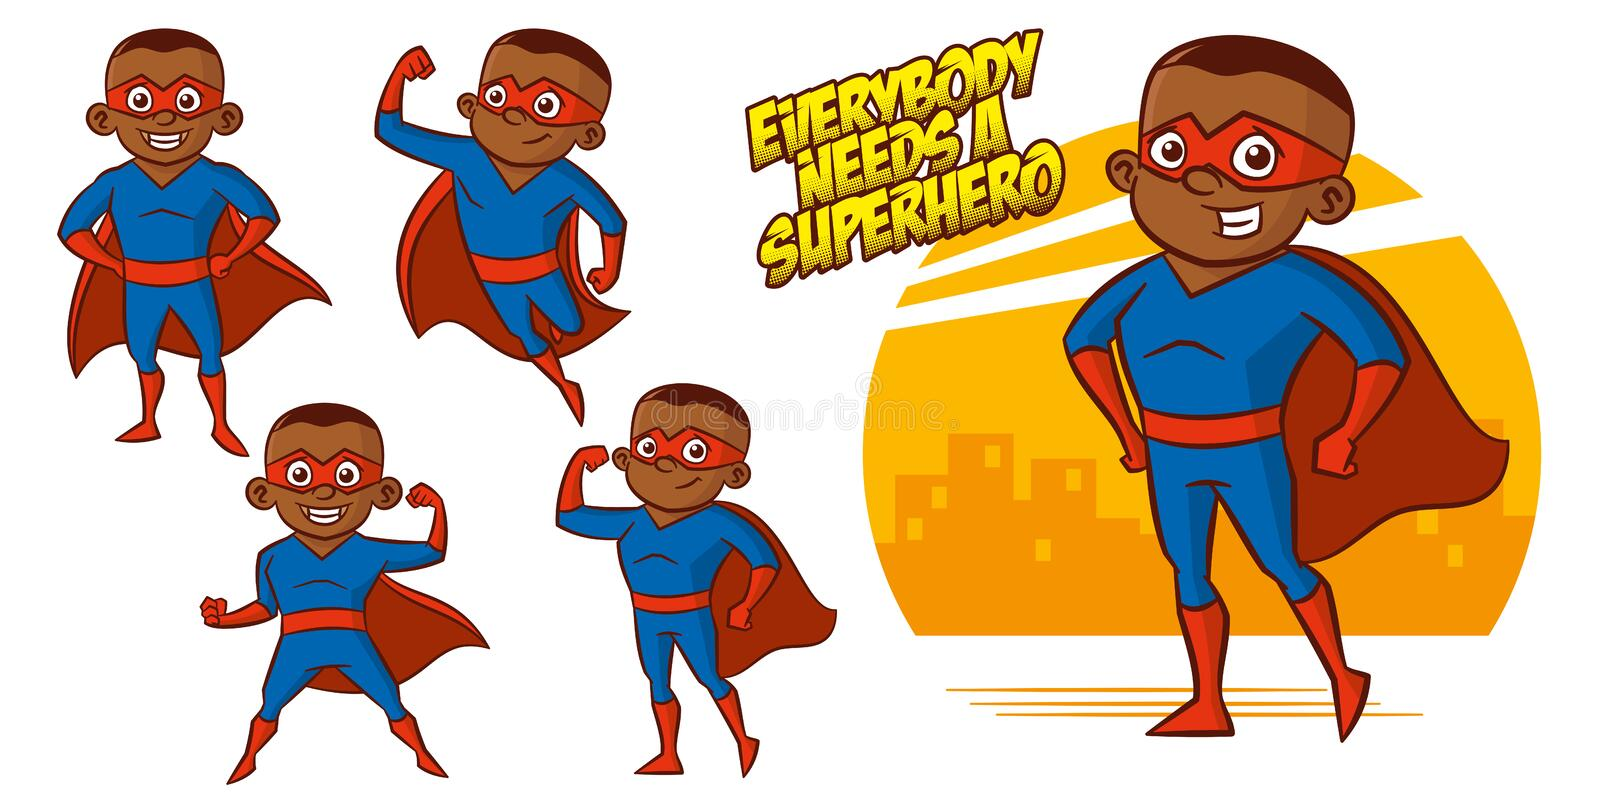 Superhero character Superheroes Set Vector illustration design. Superheroes Set Superhero character Vector illustration design royalty free illustration